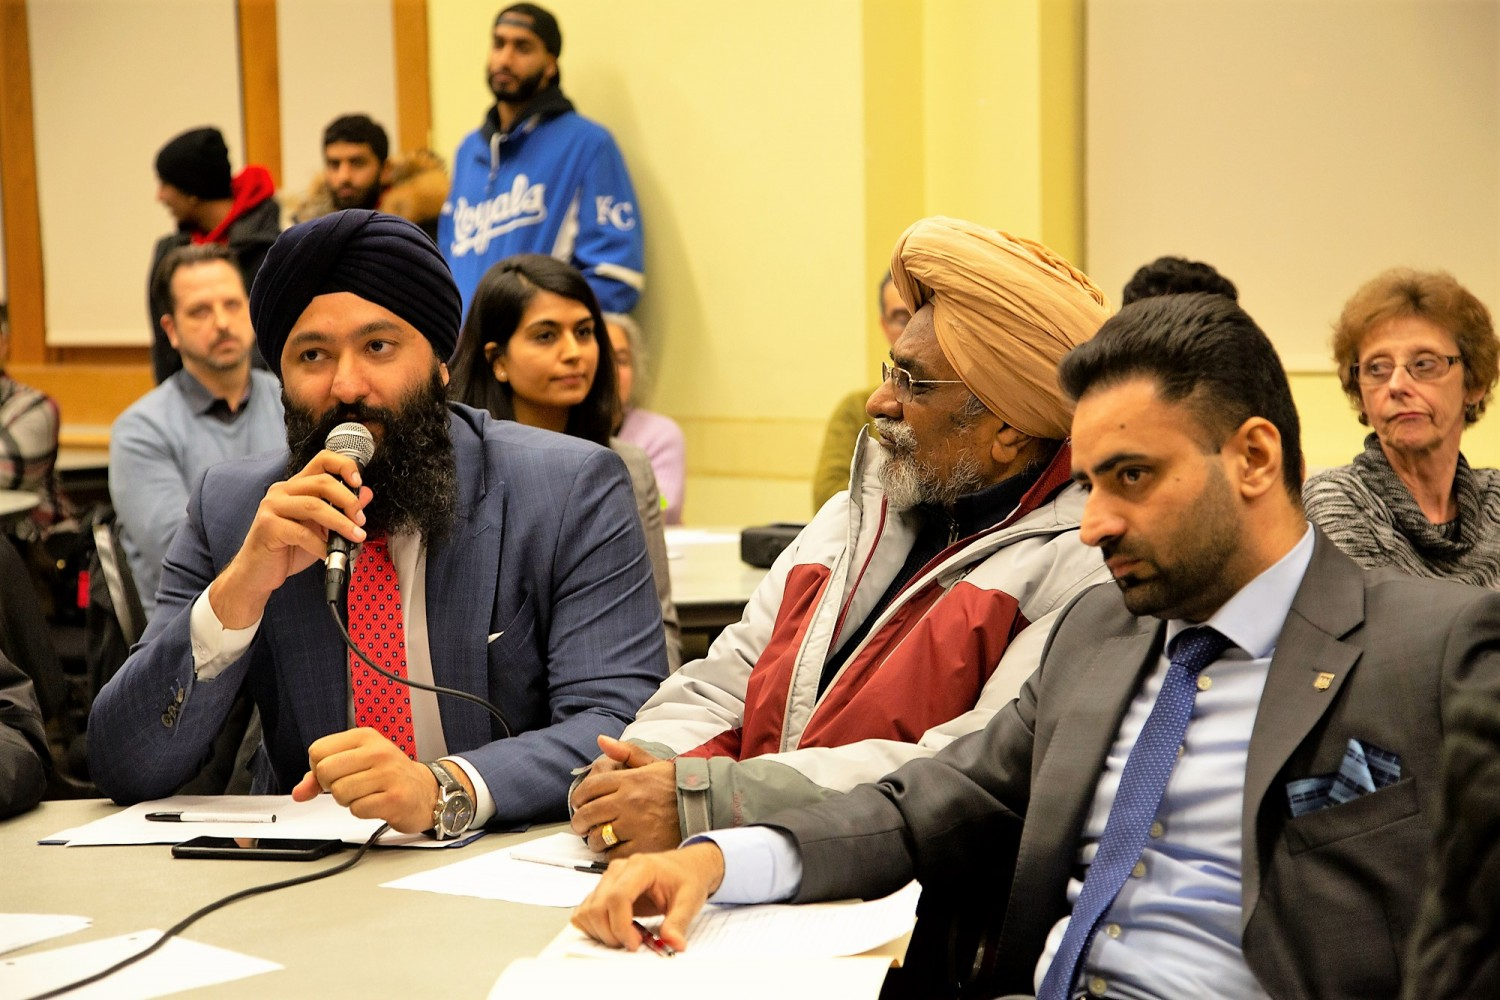 PC MPPs get a grilling after late arrival at town hall on Brampton's healthcare crisis